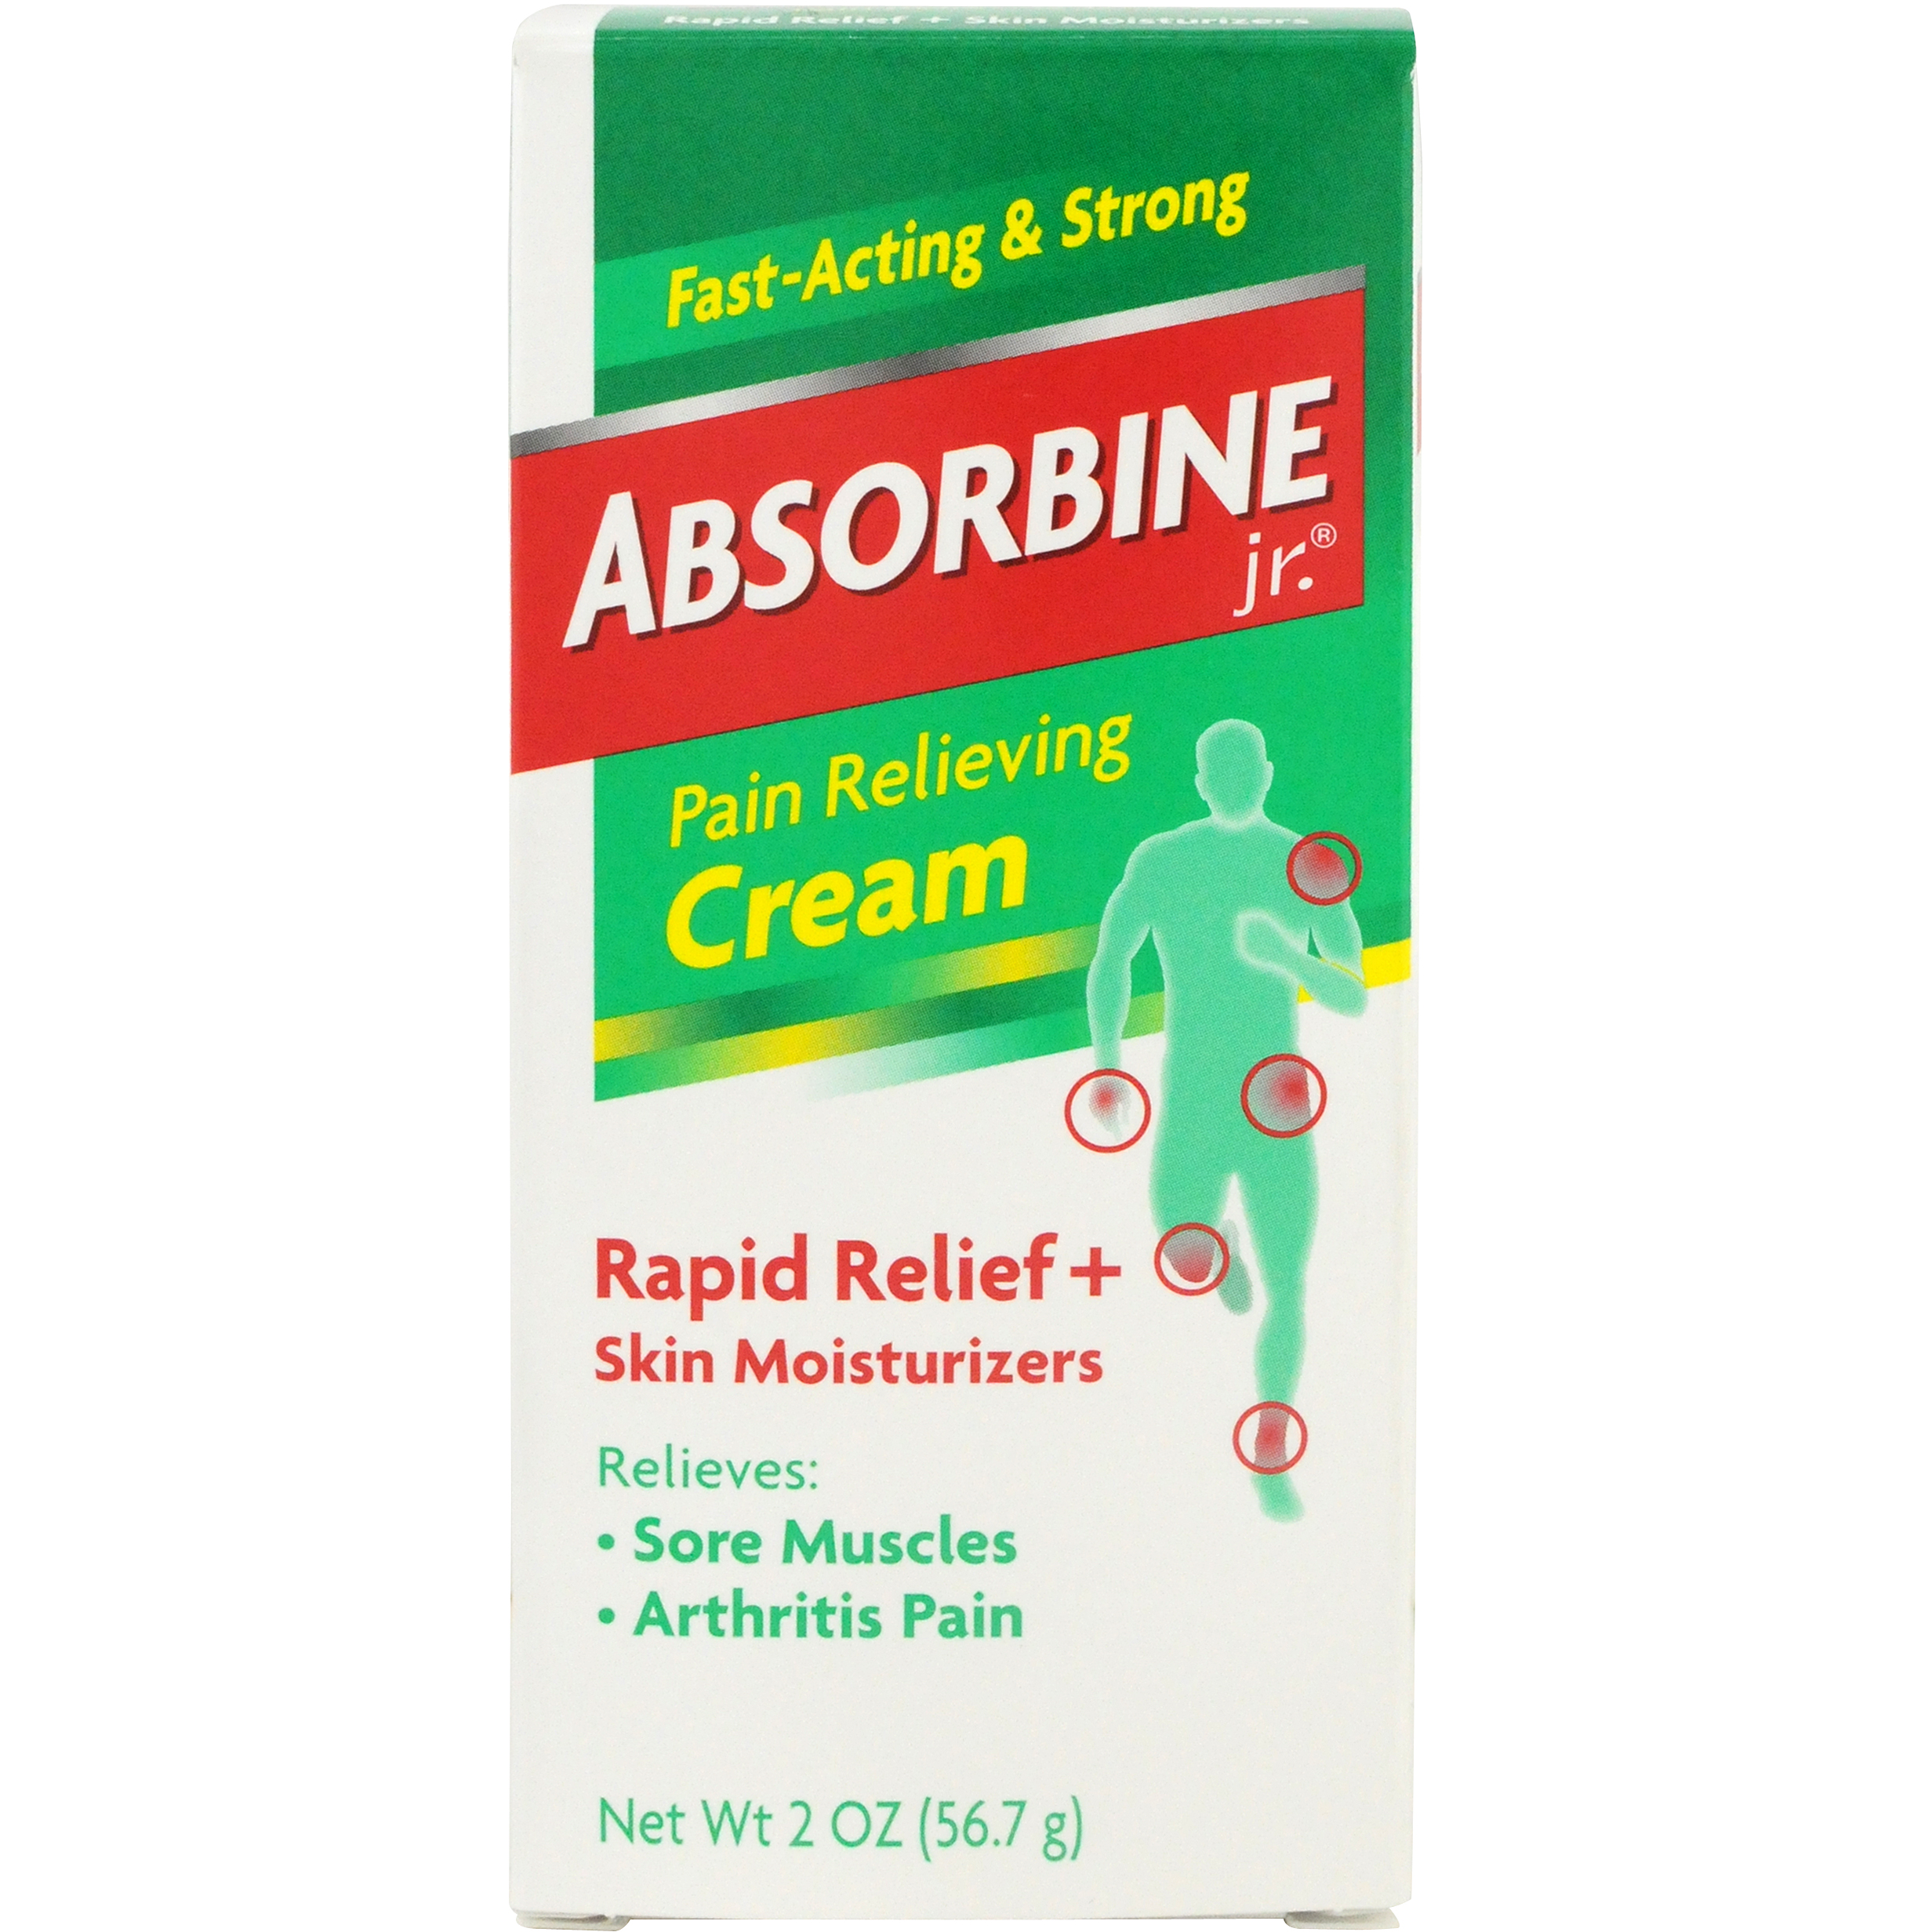 Image of Absorbine Jr. Pain Relieving Cream, 0.2 Oz